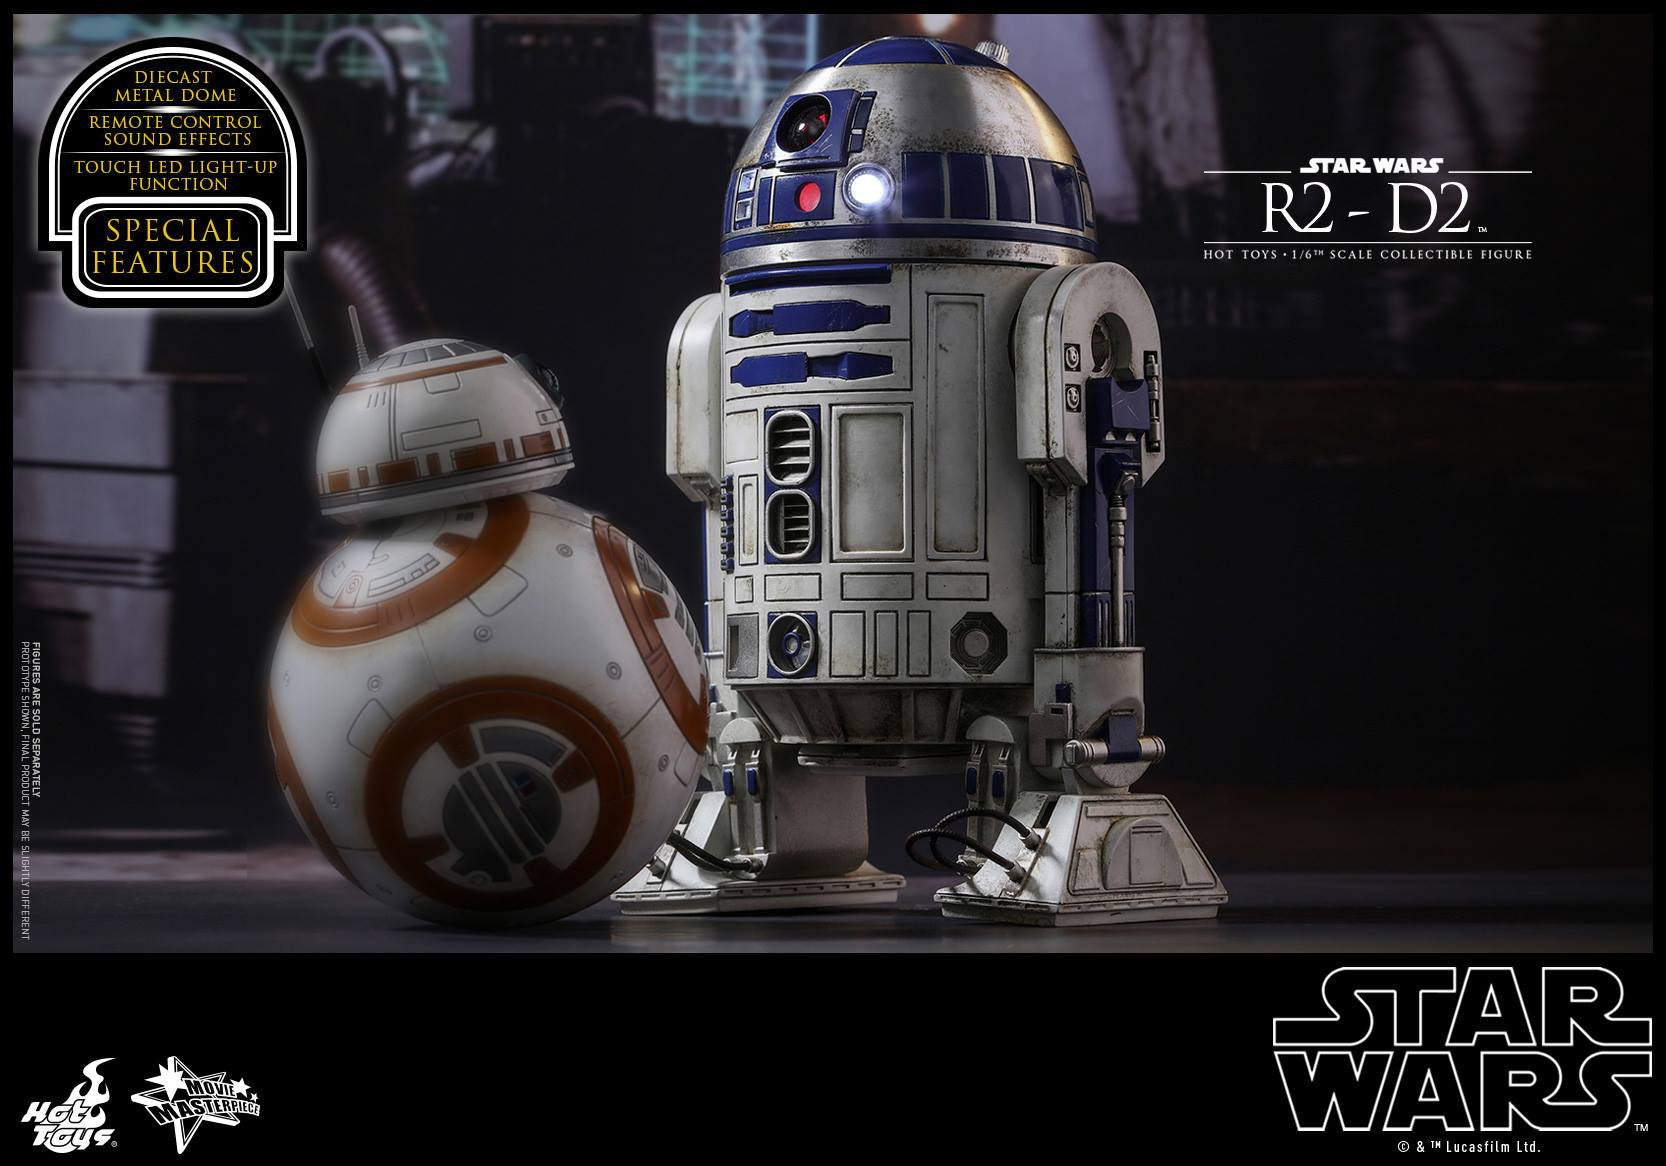 Hot Toys - MMS408 - Star Wars: The Force Awakens - R2-D2 - Marvelous Toys - 12